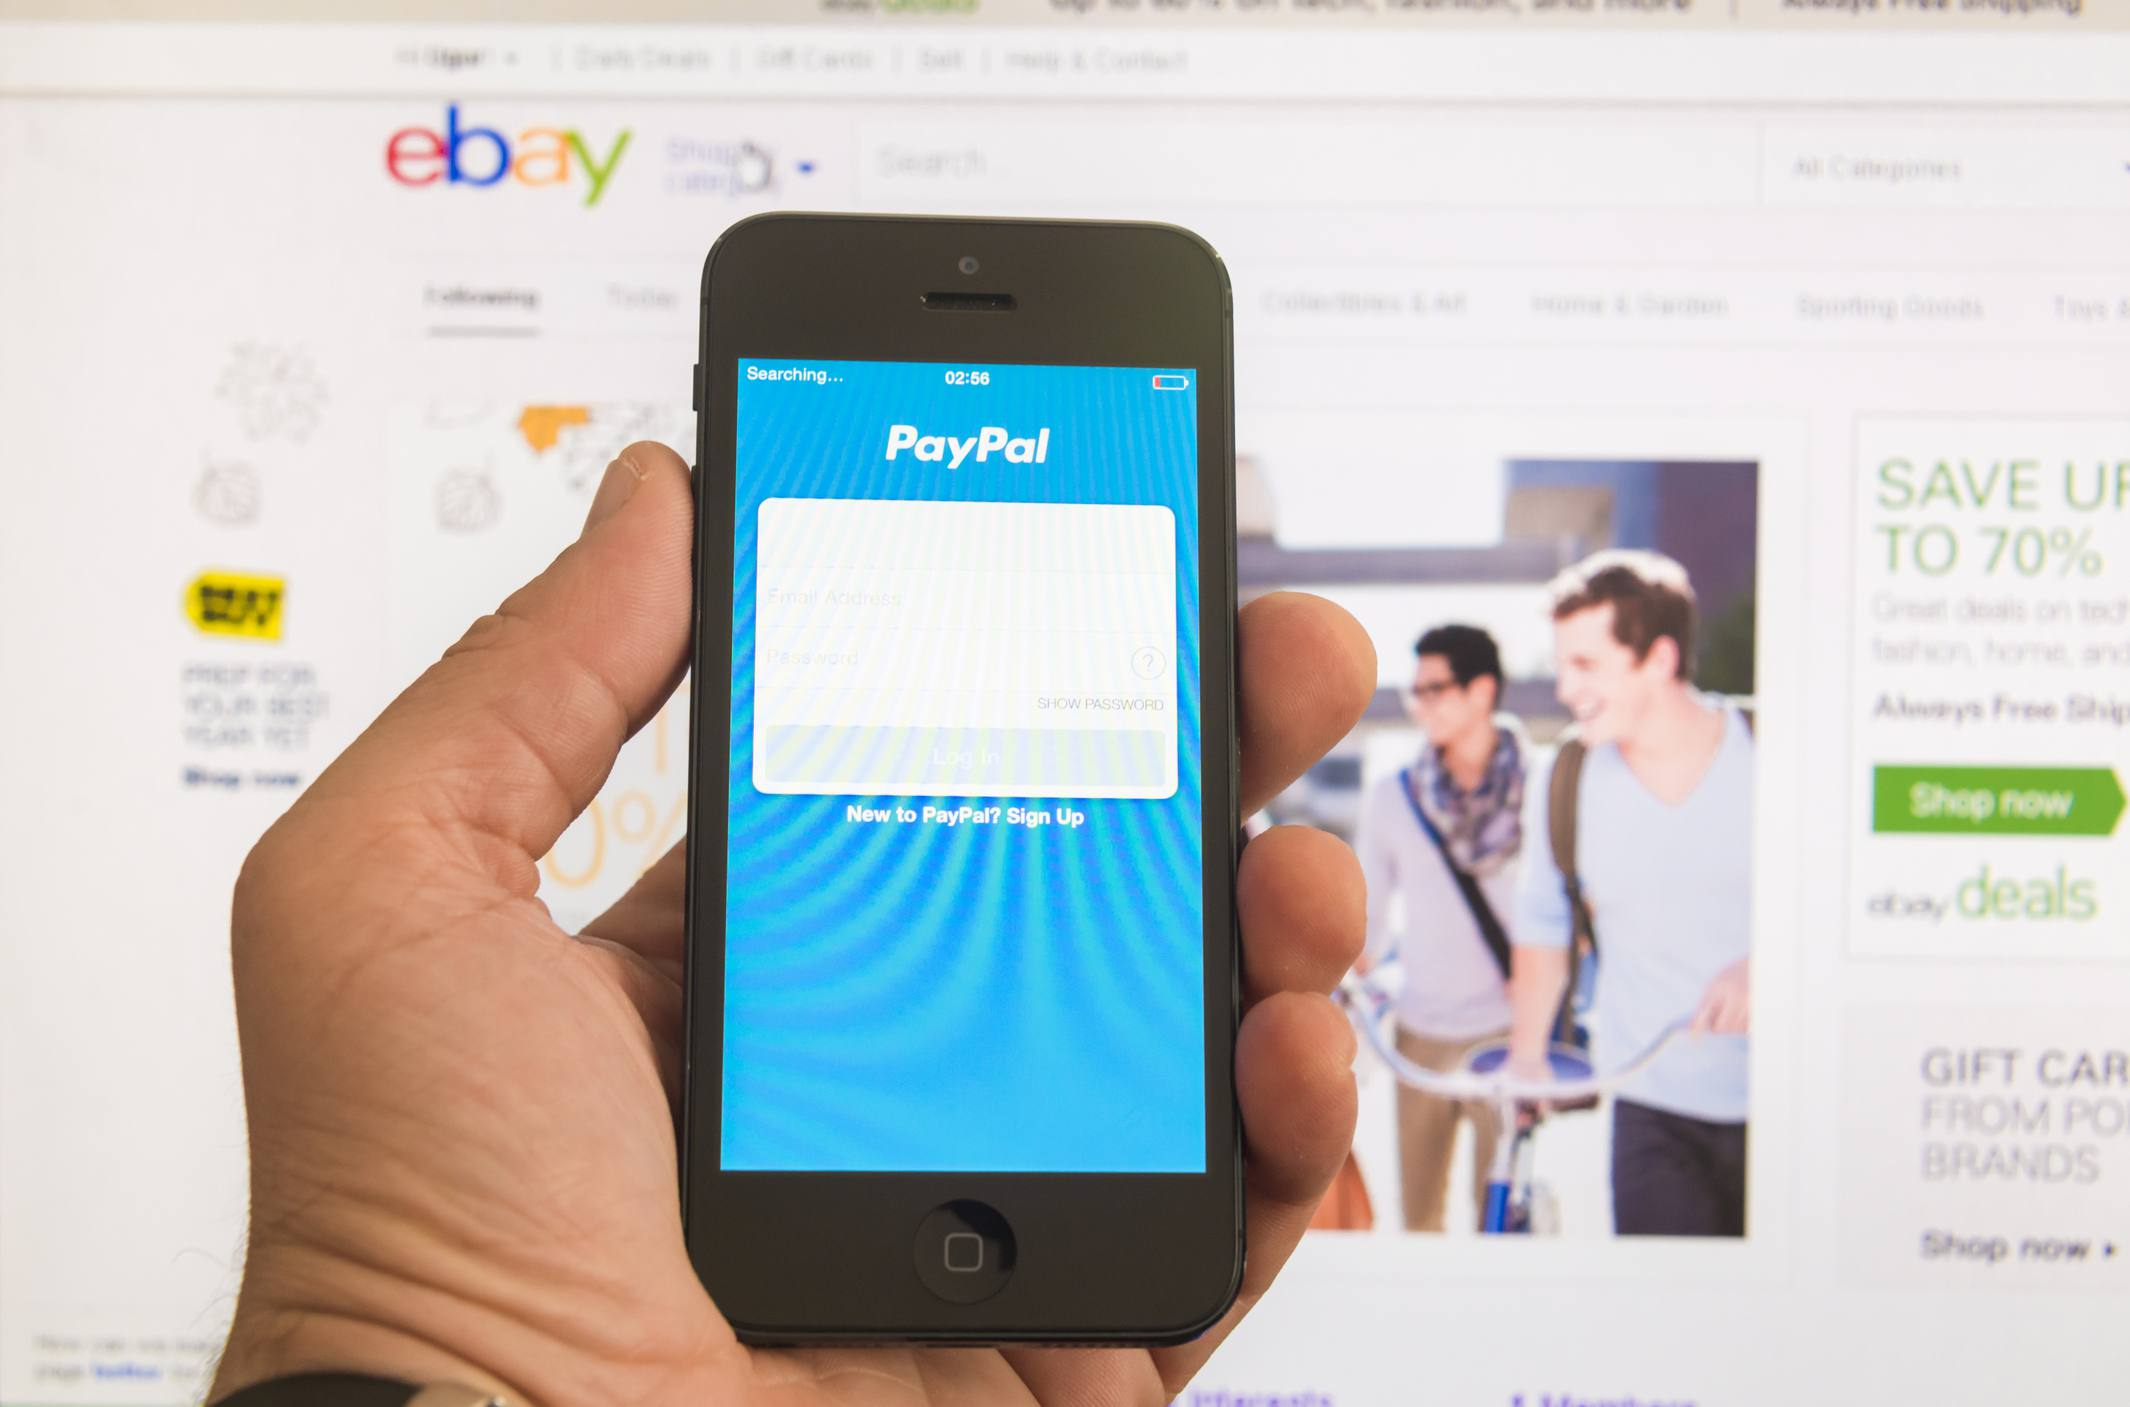 Getting Started as an eBay Seller